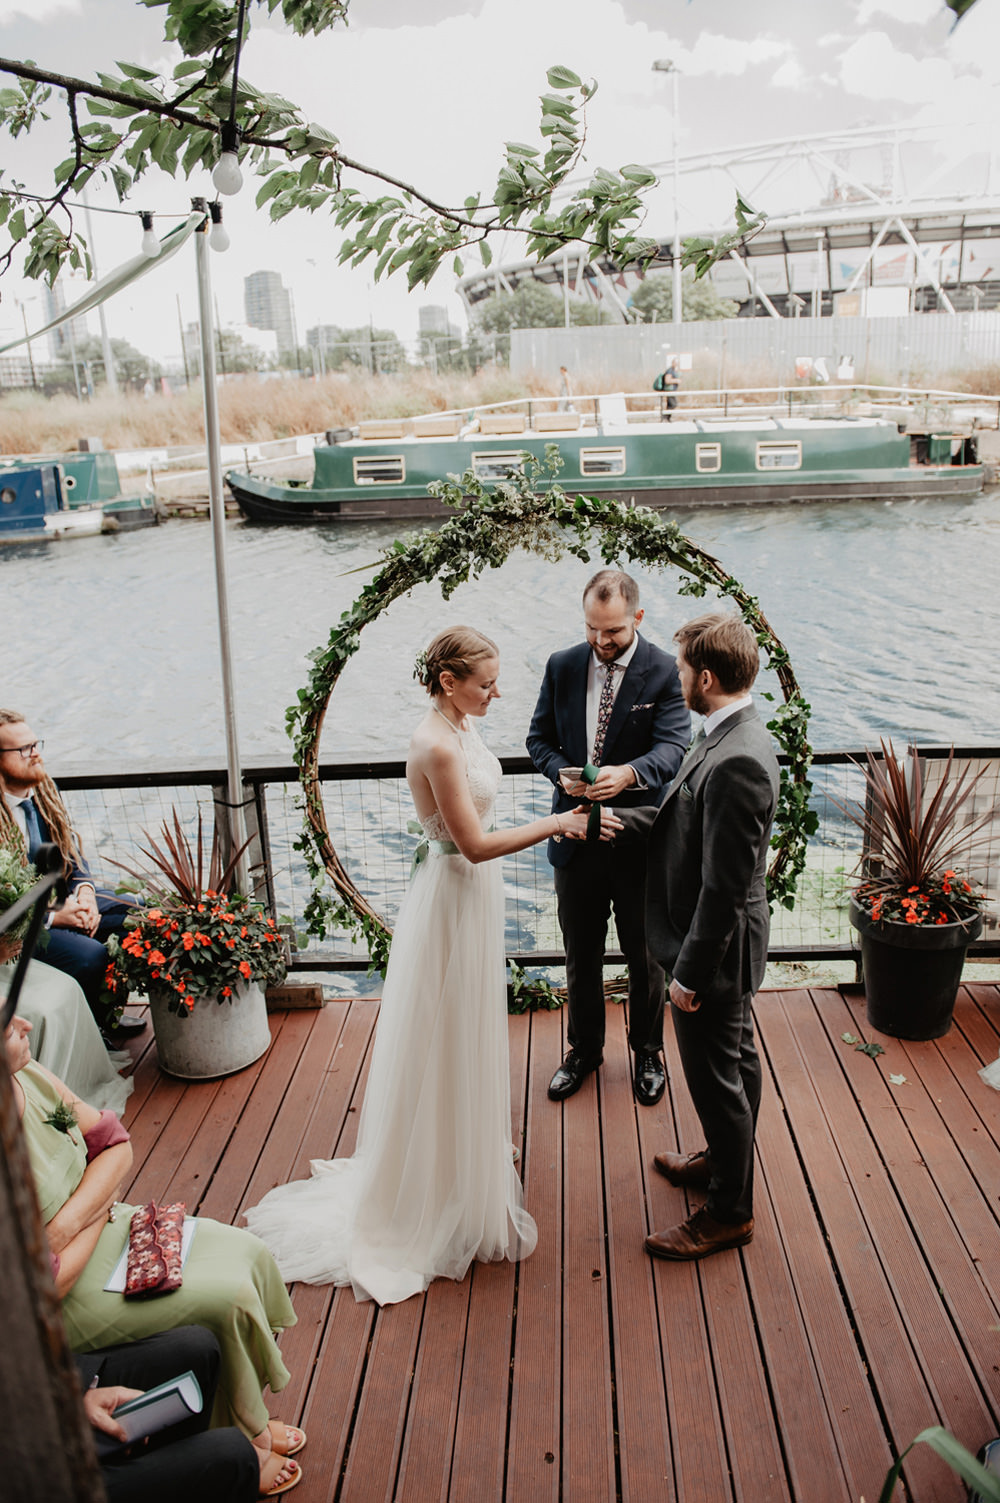 Greenery Foliage Moongate Arch Backdrop Ceremony Aisle Stour Space Wedding Anne Schwarz Photography